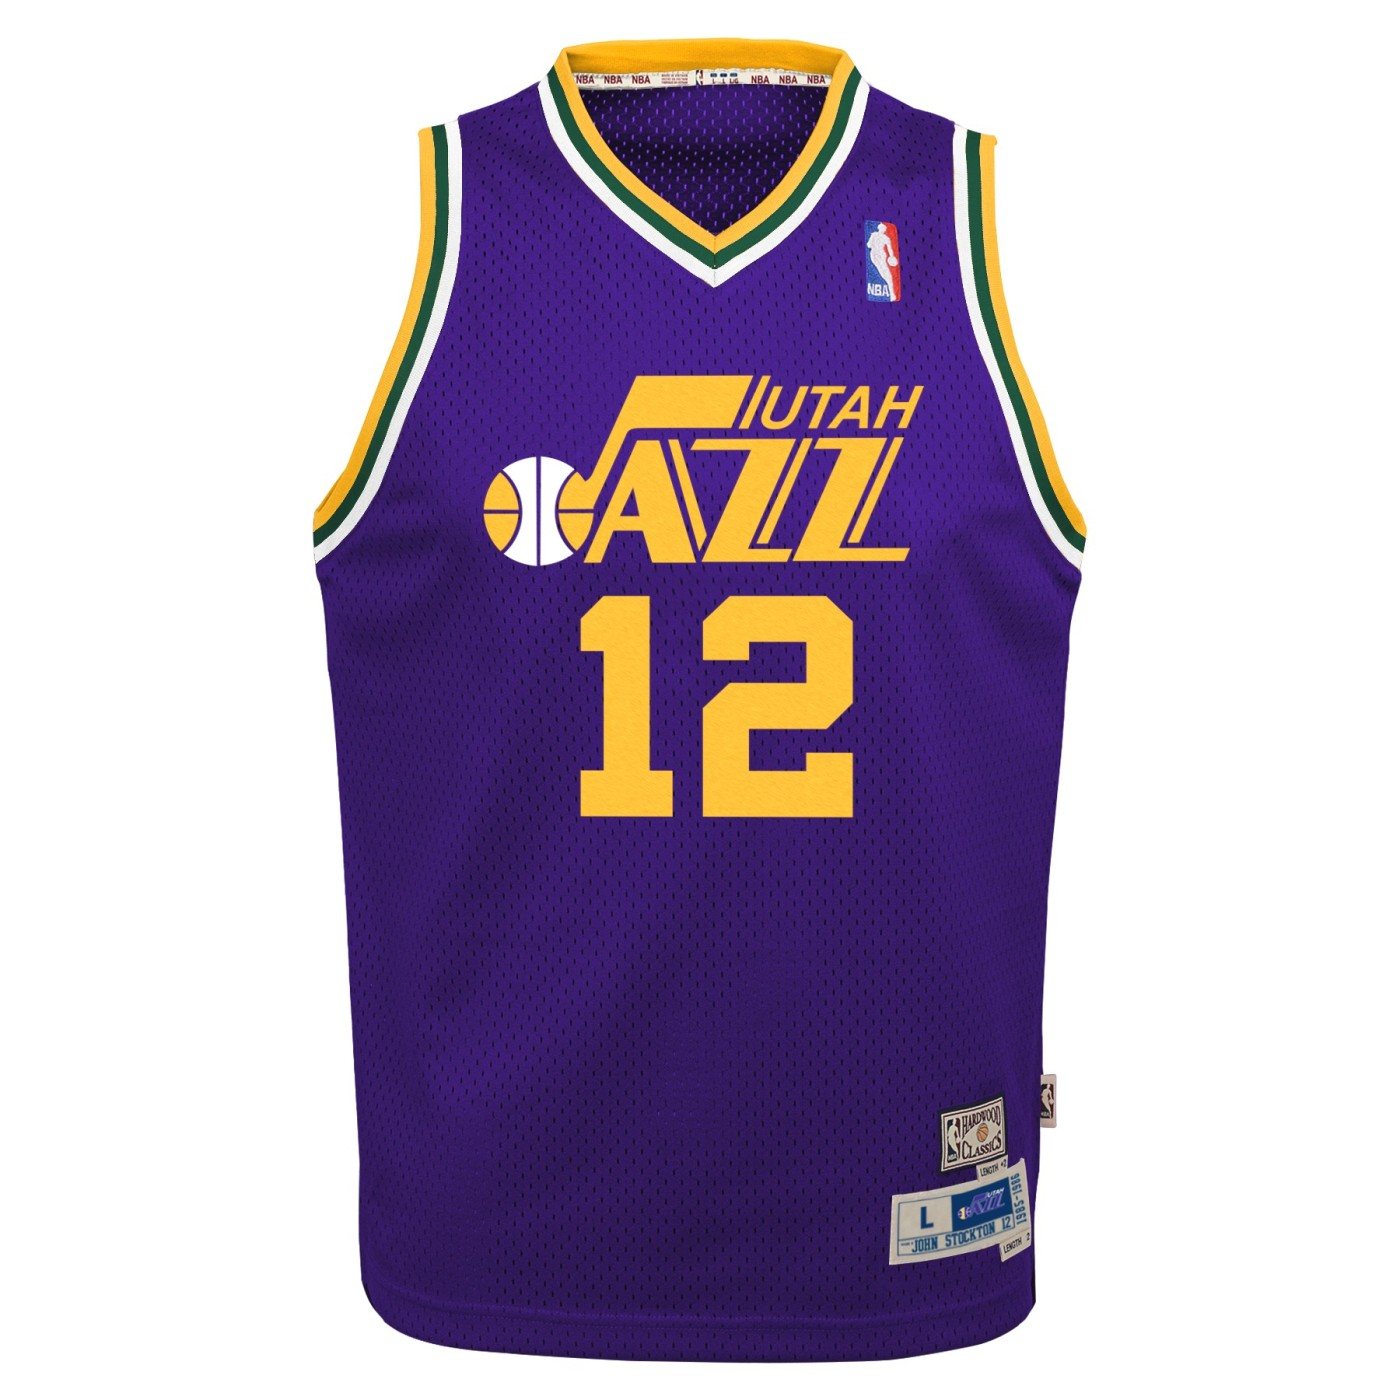 John Stockton Utah Jazz NBA Youth Throwback Swingman Jersey